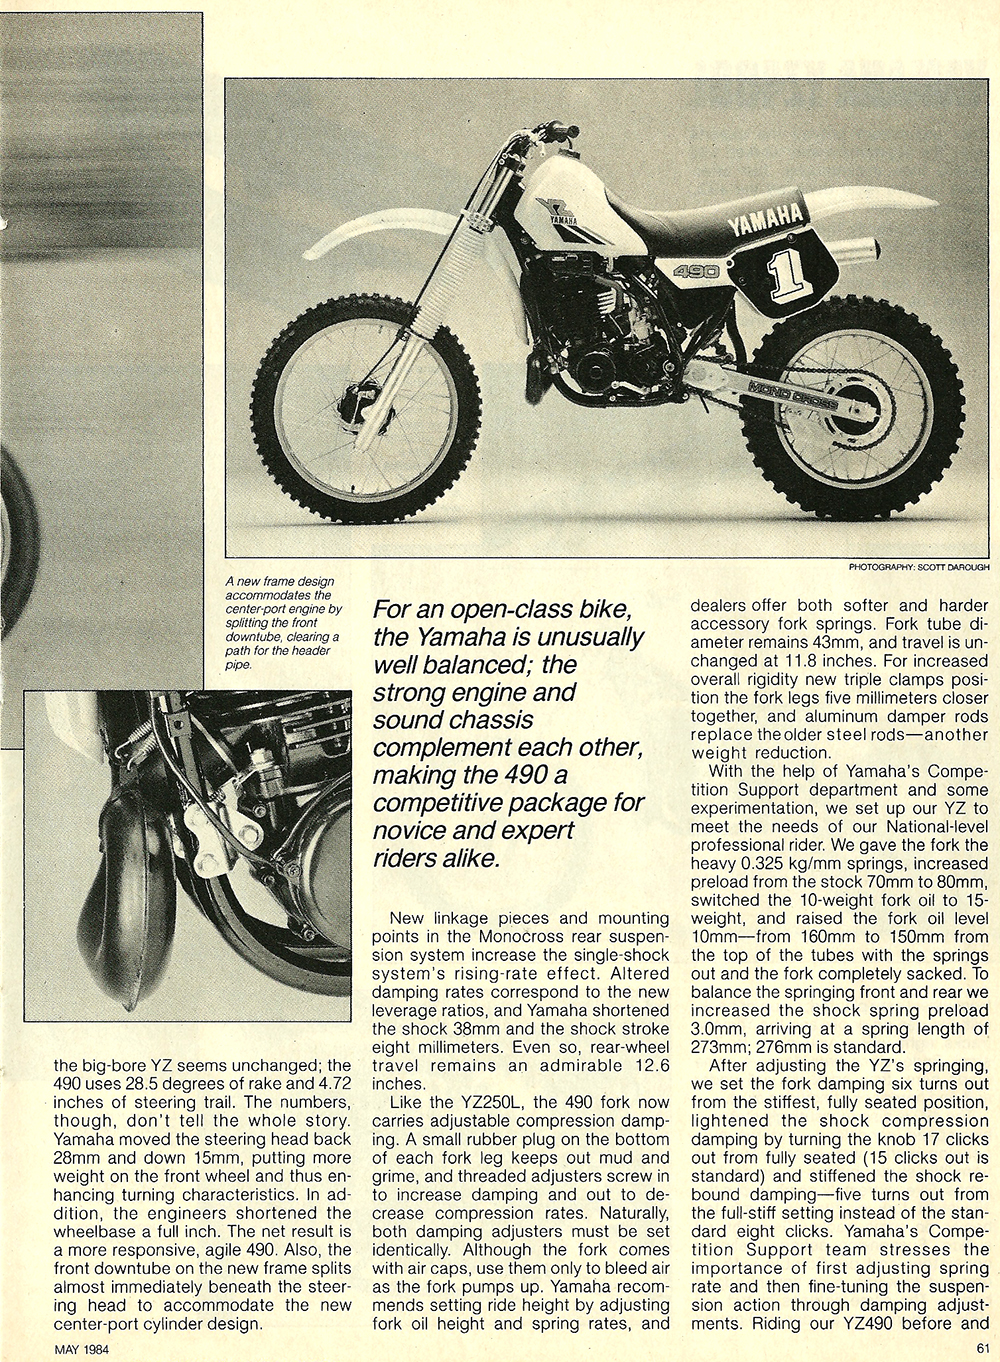 1984 Yamaha YZ490L off road test 4.jpg